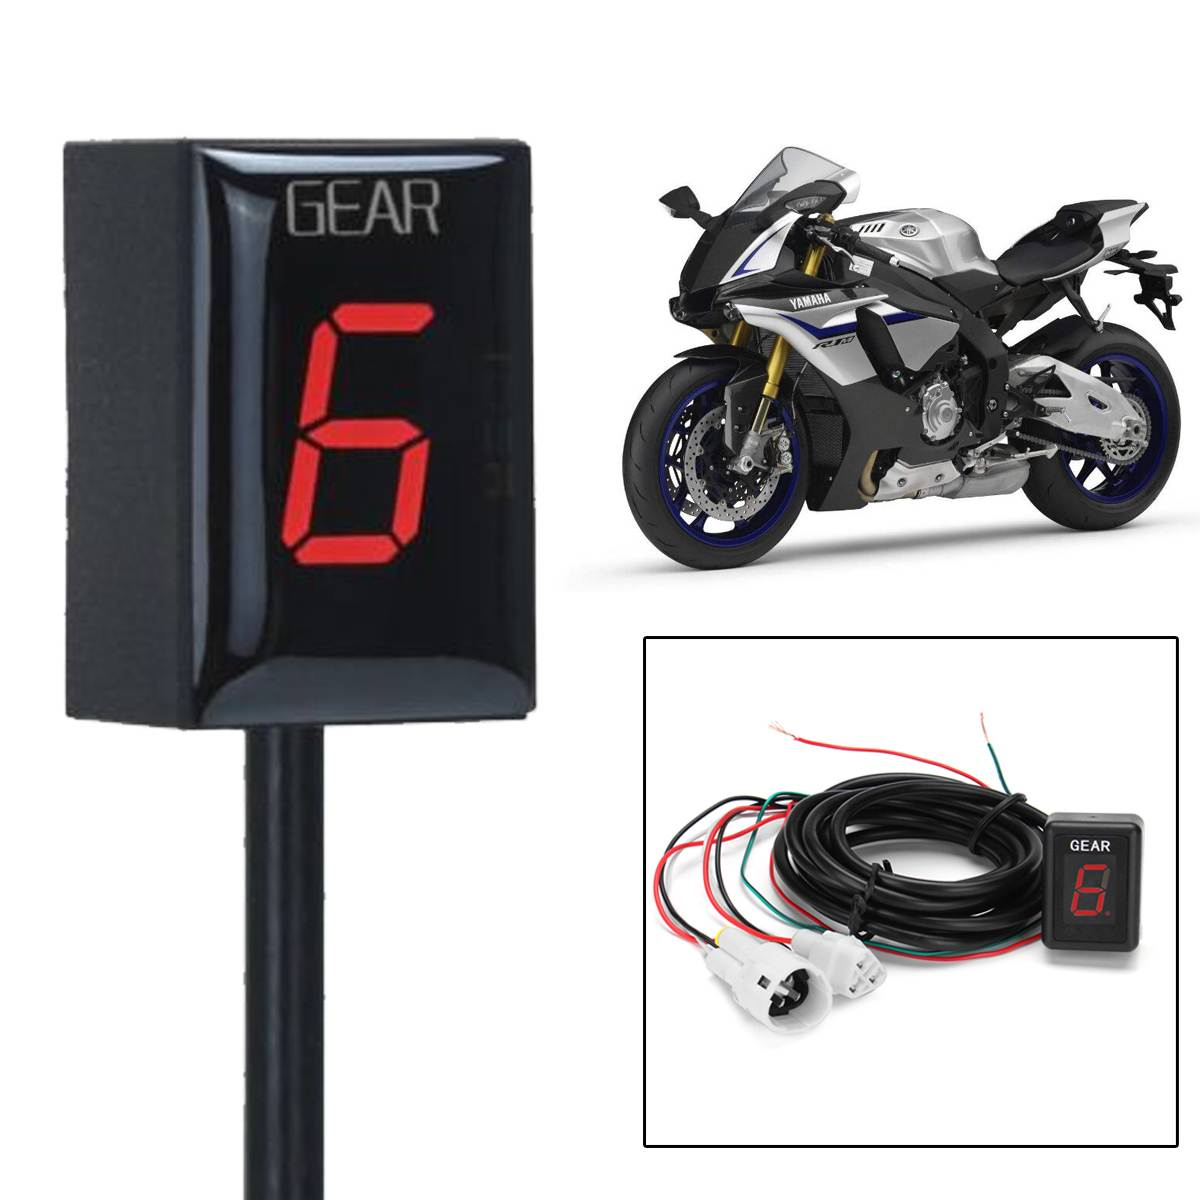 1 6 Speed Motorcycle Gear Indicator Gear Meter Red LED